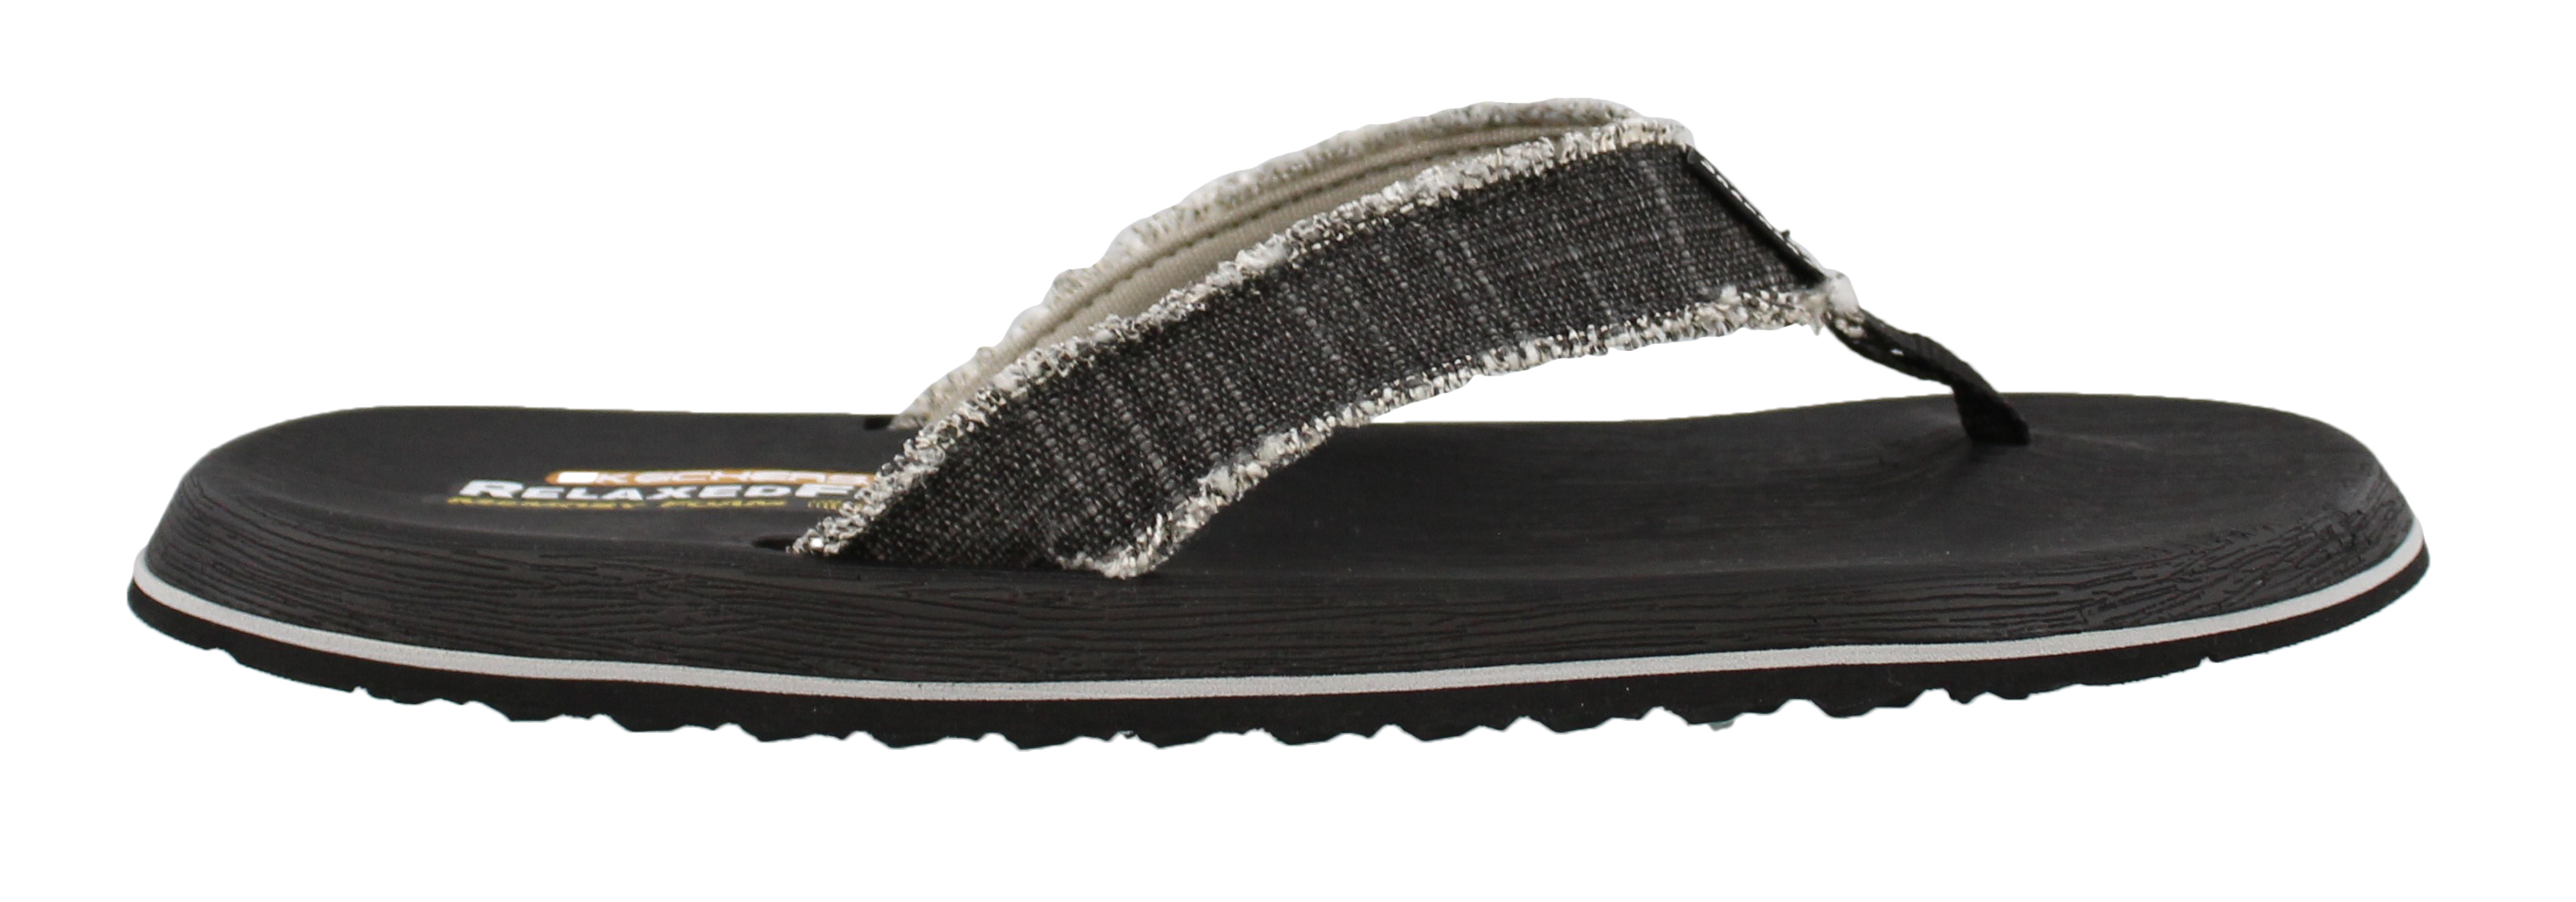 Men's Skechers, Tantric Salman Thong Sandals by Skechers